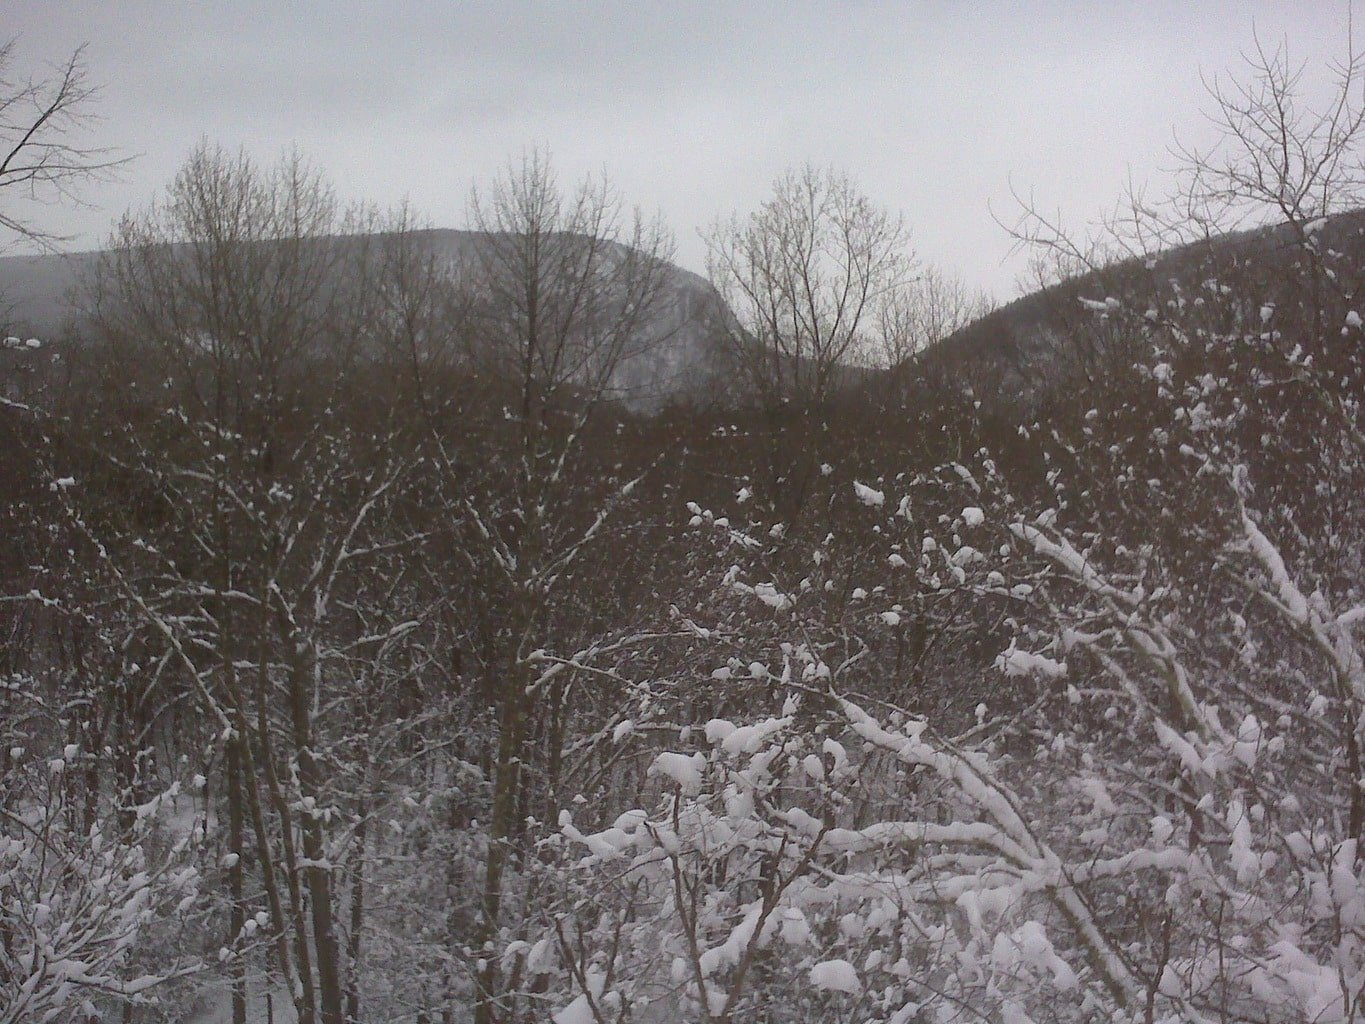 Winter View of The Gap